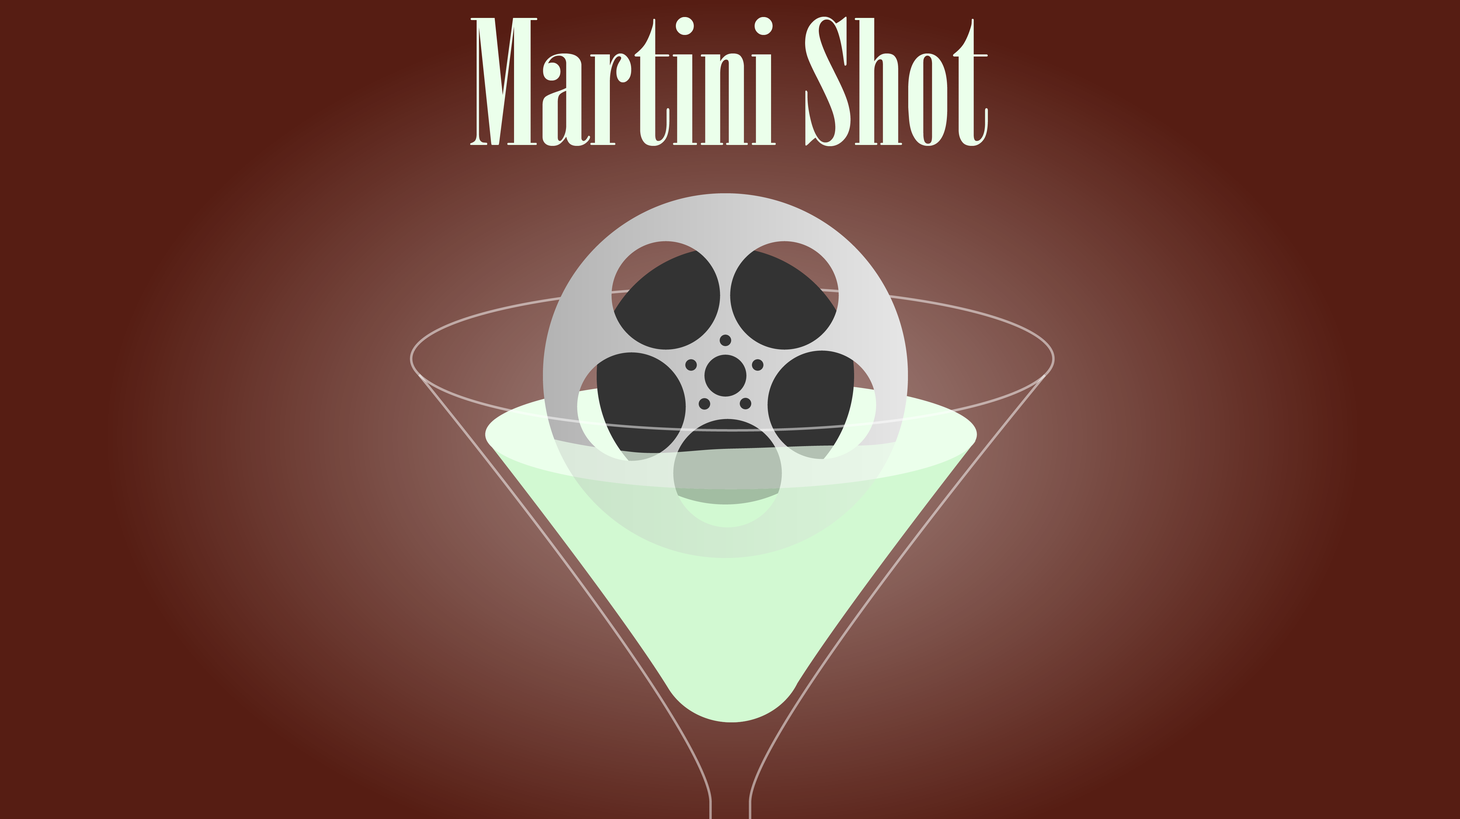 On this week's Martini Shot, Rob is not hired to play himself. He don't have the chops, apparently.